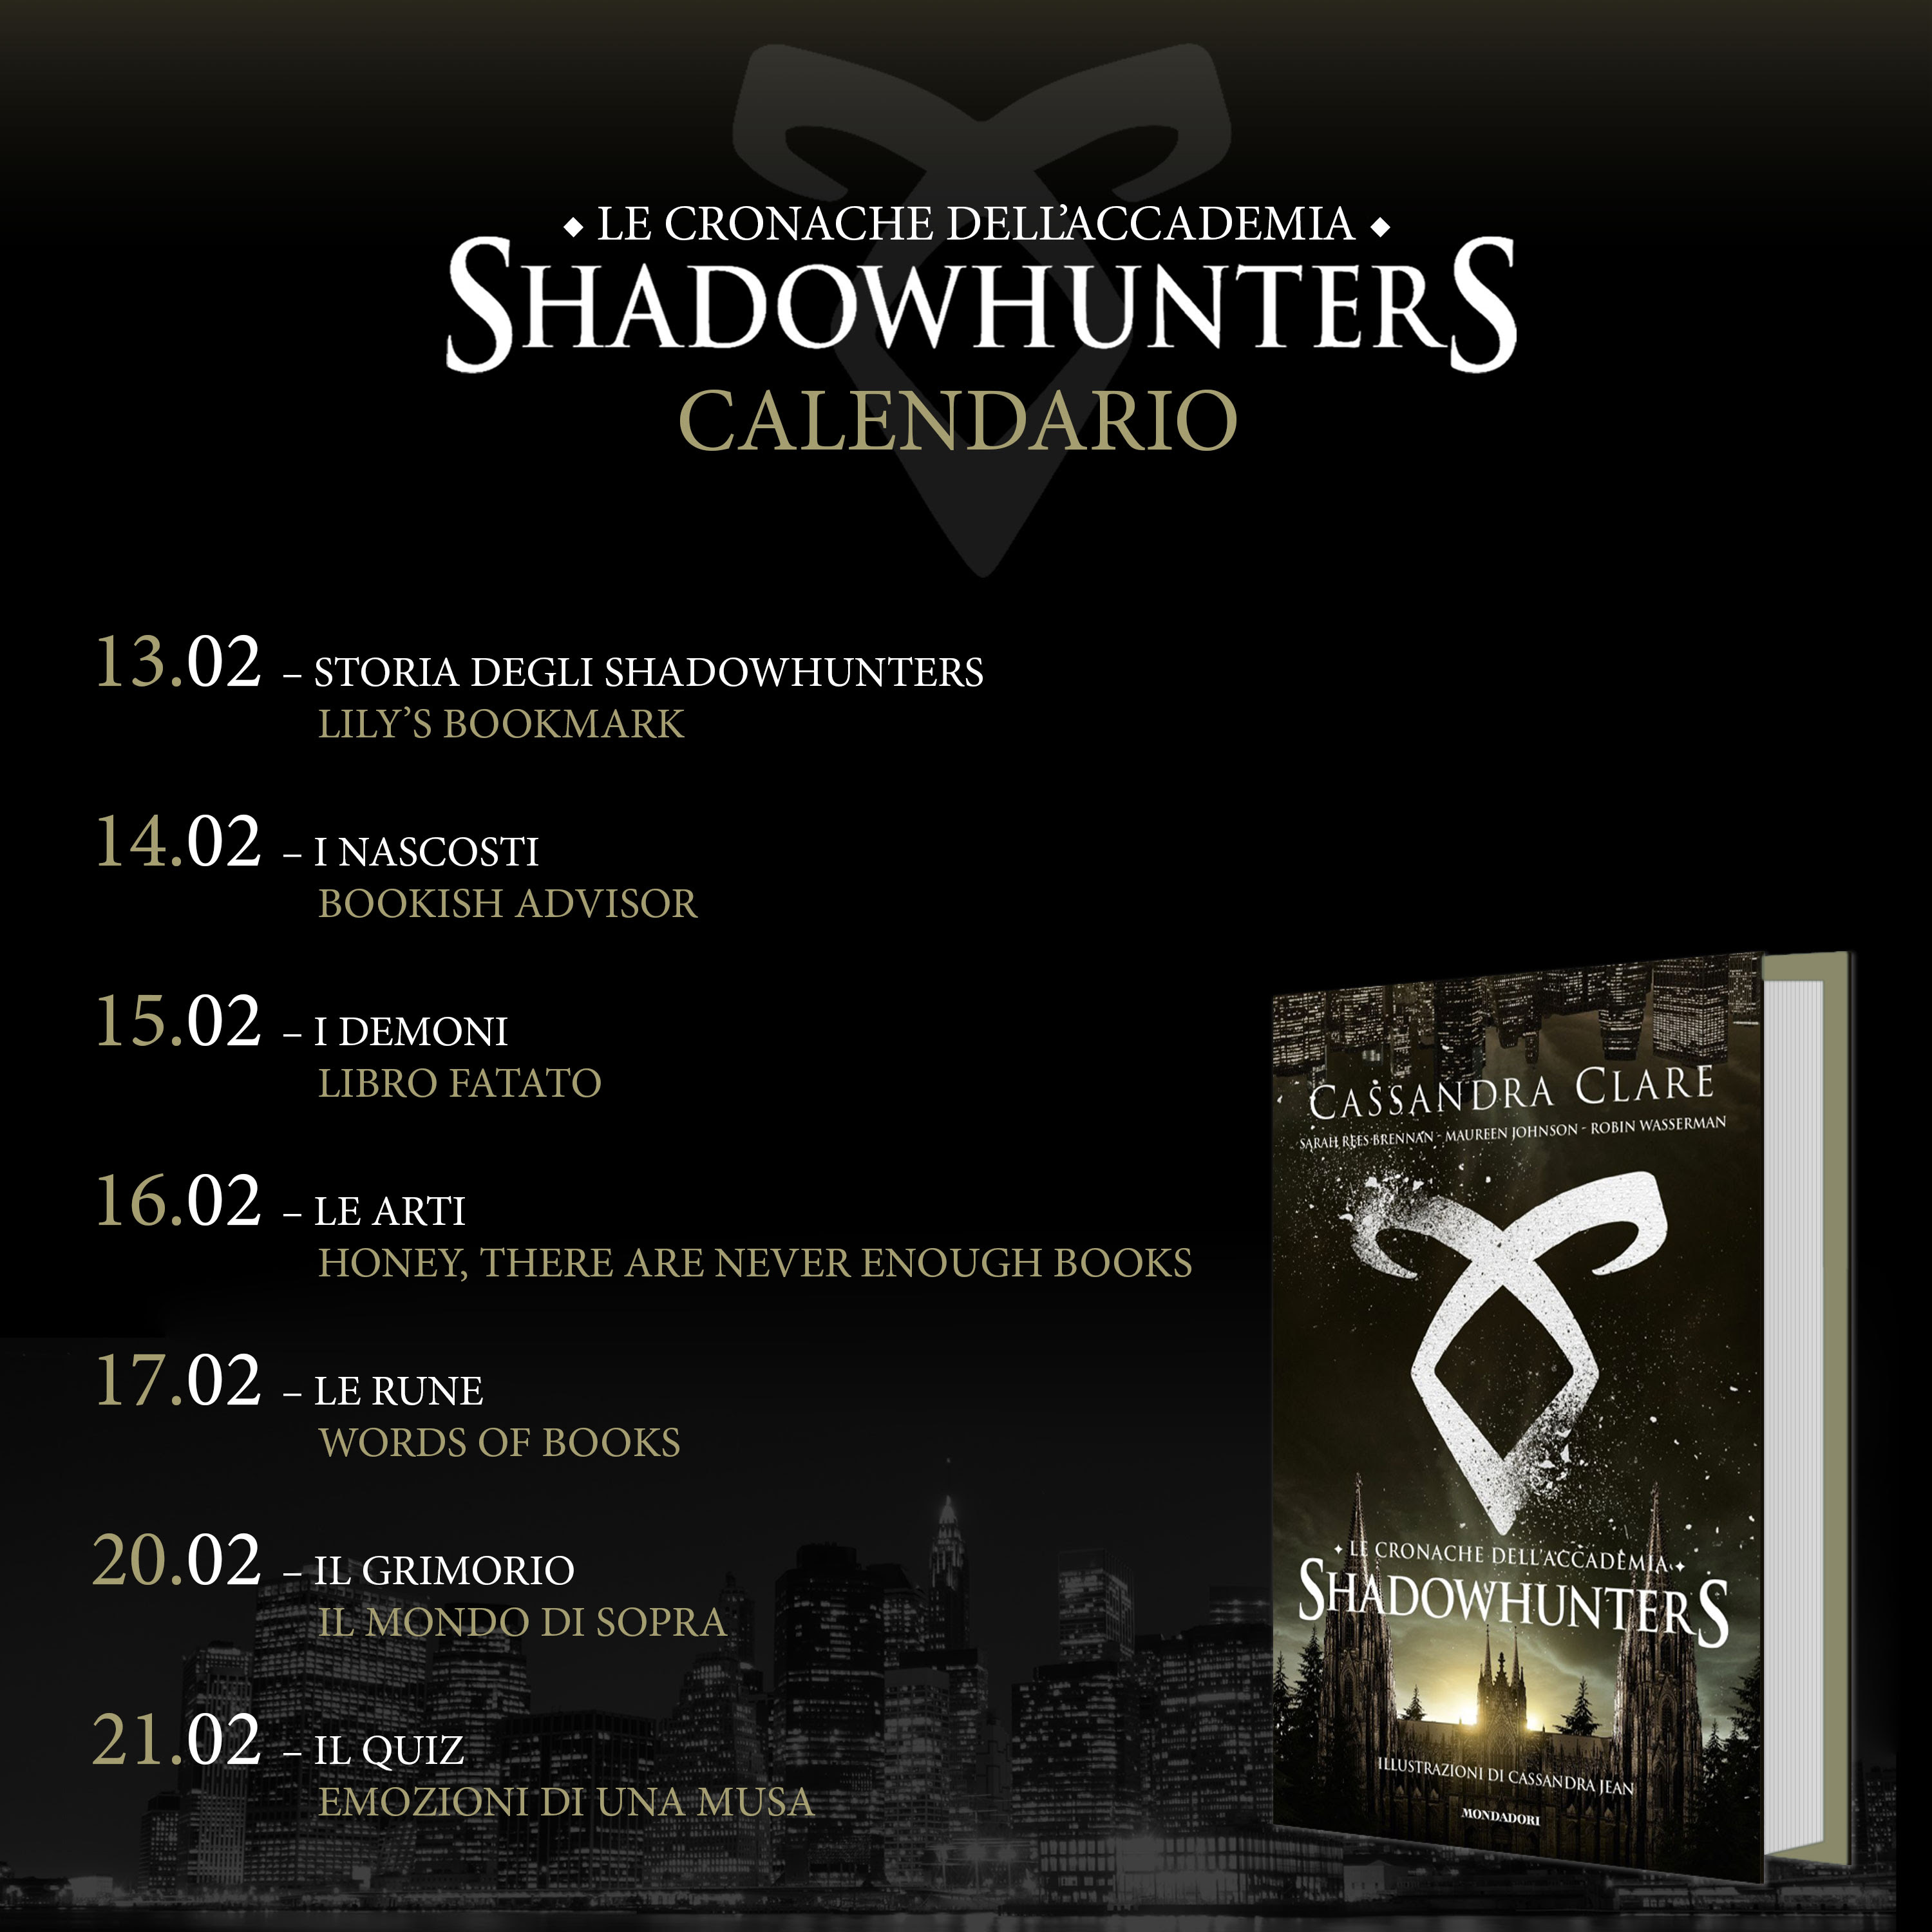 Calendario Shadowhunters Academy